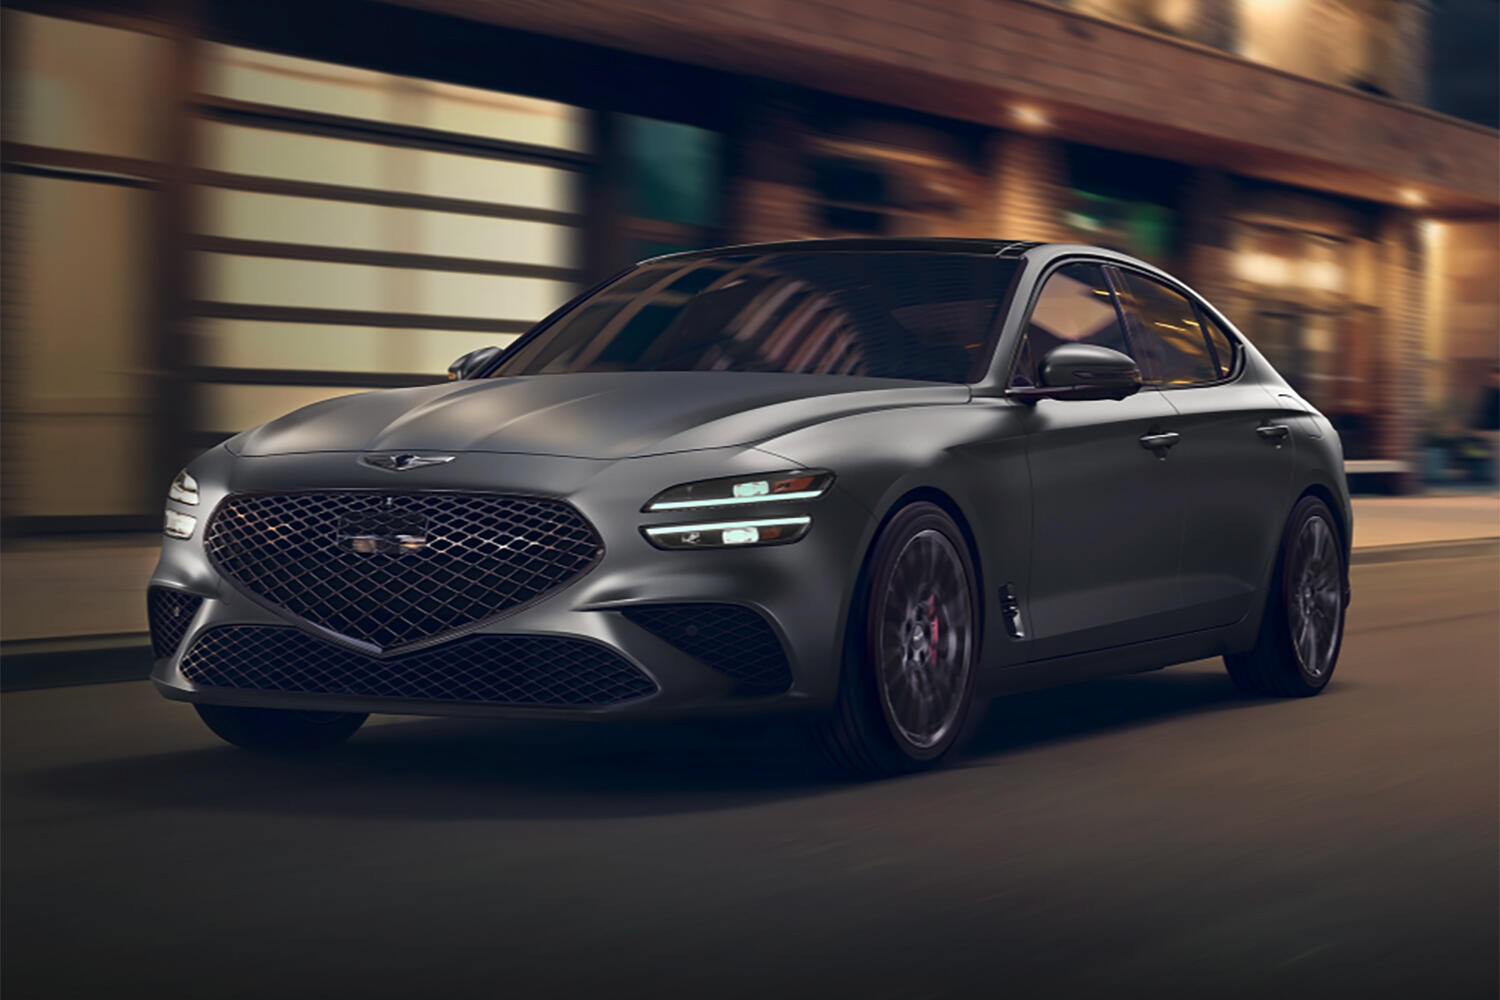 2022 Genesis G70 Launch Edition